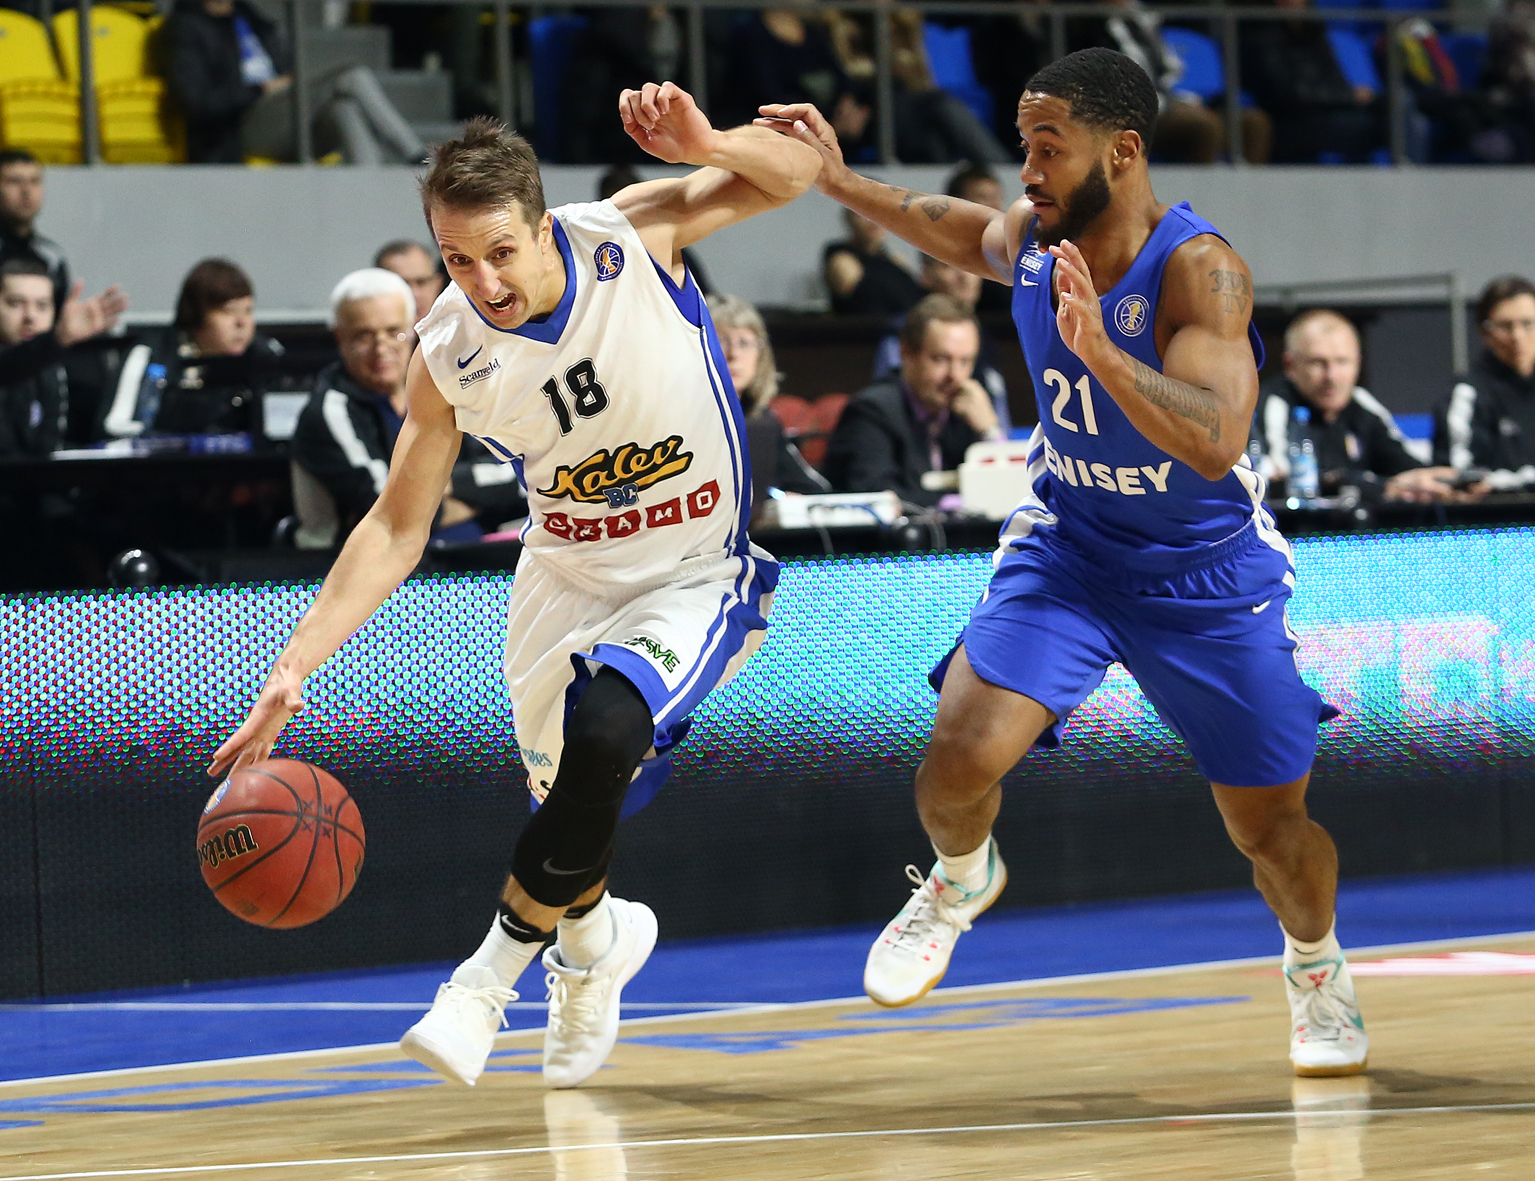 Kalev Beats Enisey In Battle For Top-8